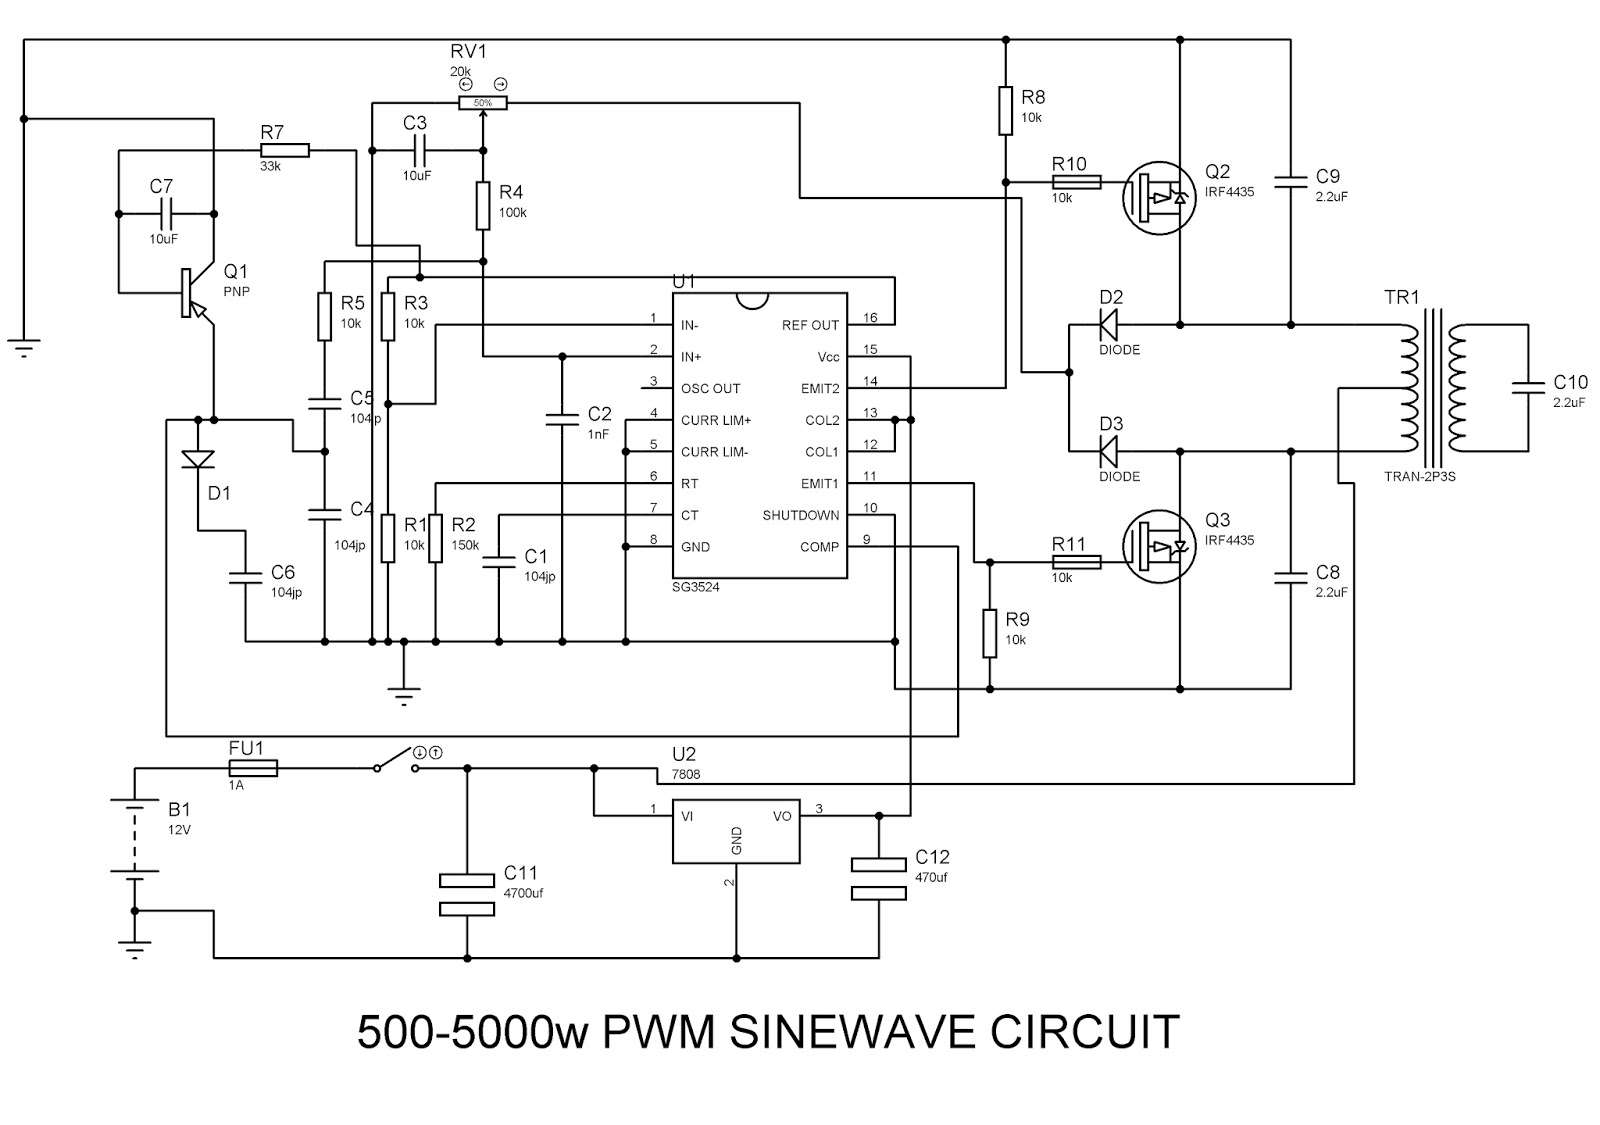 I P S Circuit Diagram Wiring Library Simple Pwm Using Sg3525 Inverter About The